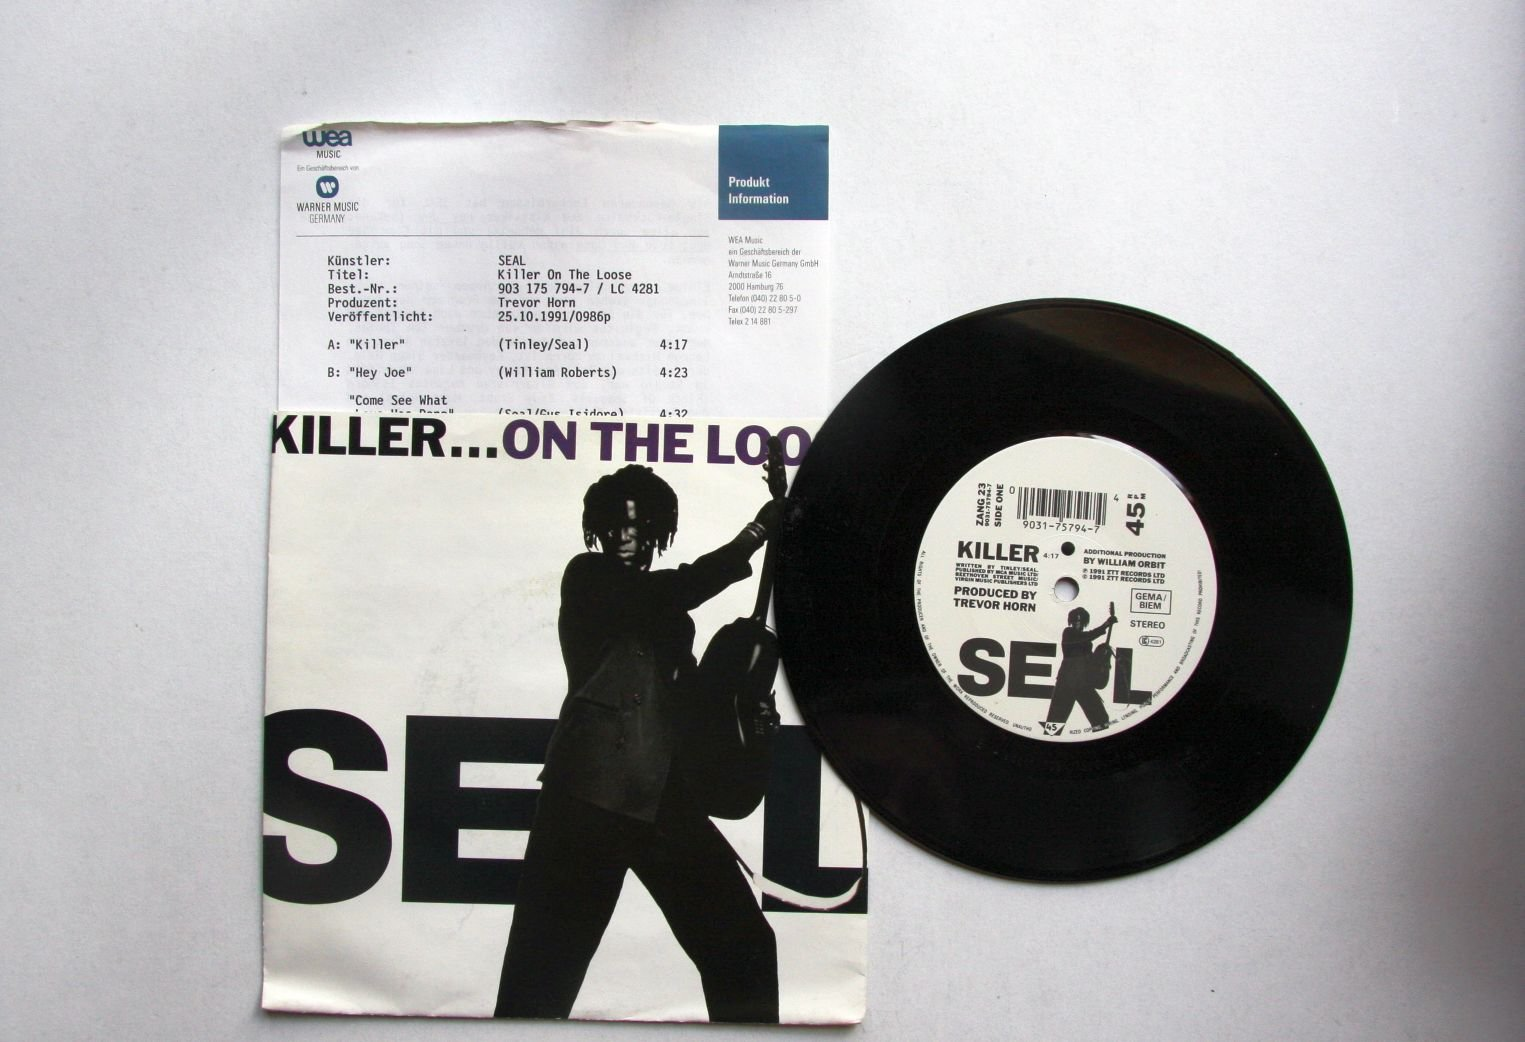 Seal - Killer...on The Loose CD